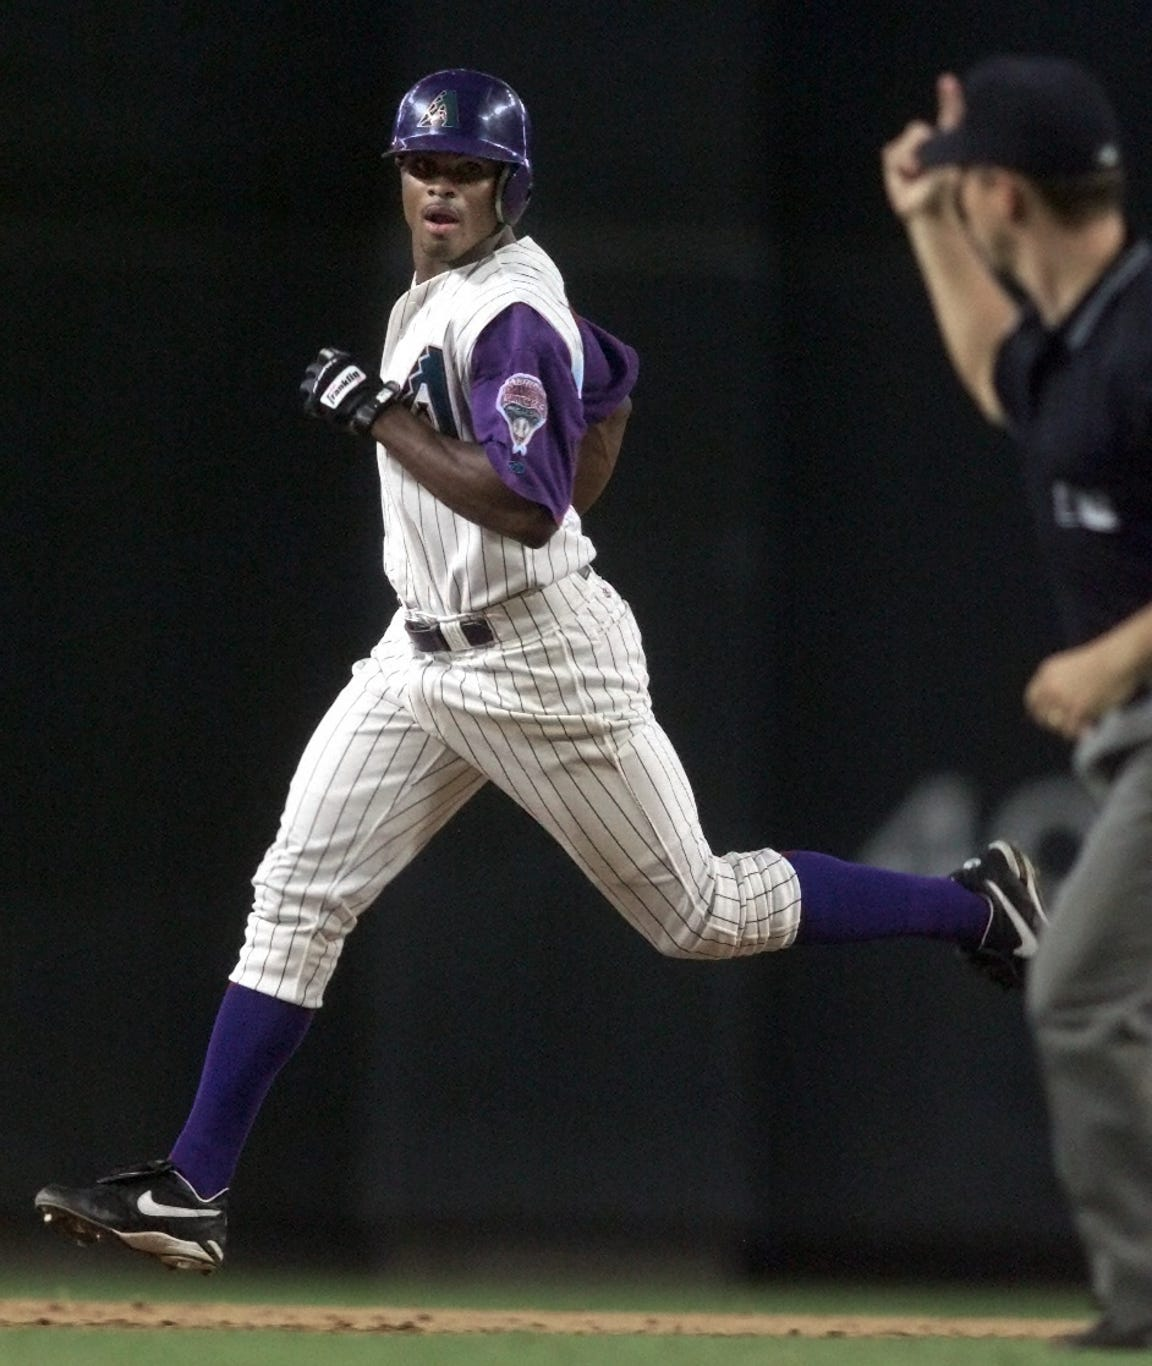 Arizona Diamondbacks' Junior Spivey rounds second base as the umpire signals a home run in a 2001 game against the Mets.